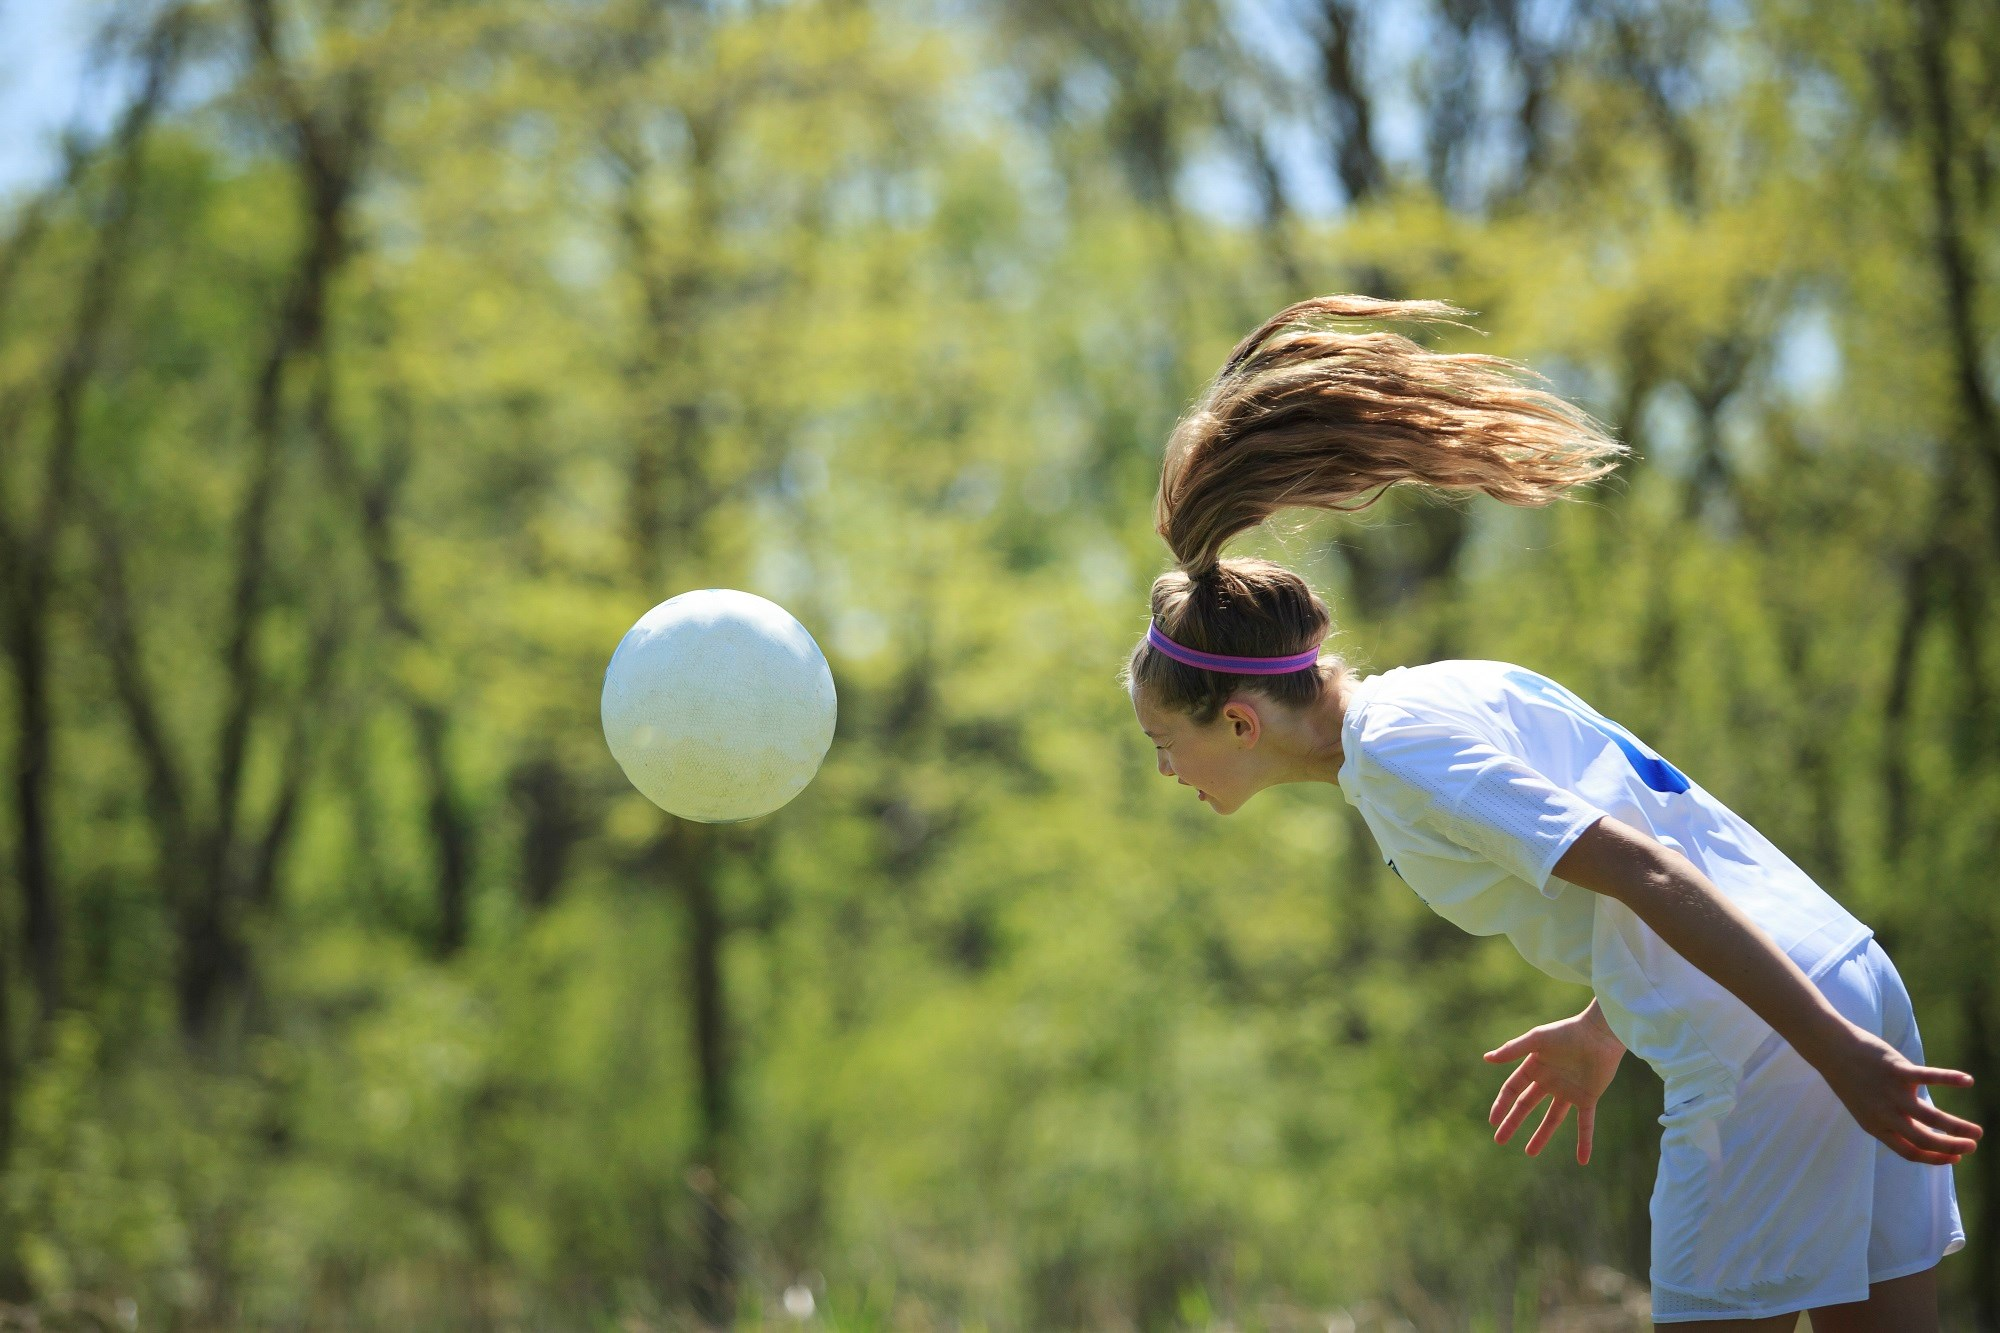 Heading a Soccer Ball Found to Be Riskier for Female Players